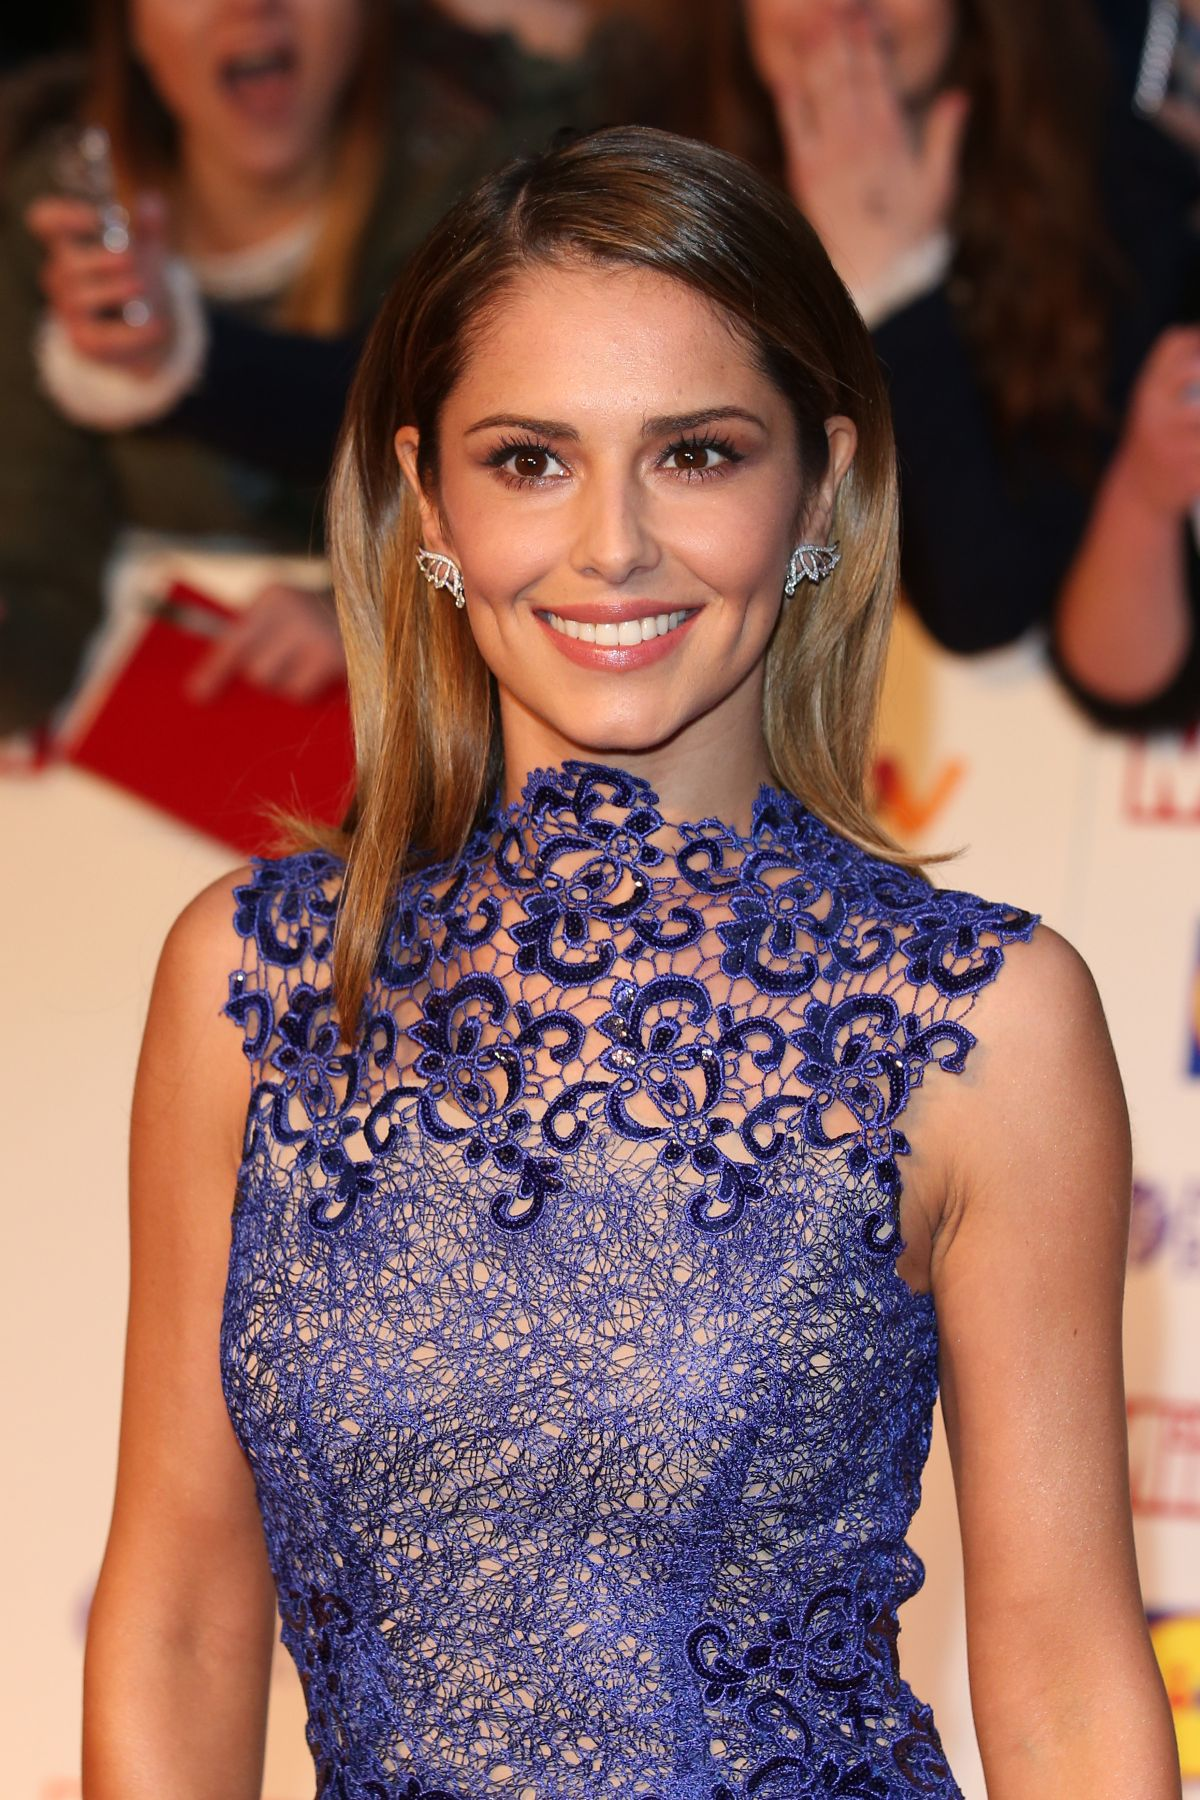 Cheryl Cole reveals HER SECRET! - The Secret Obsession Cheryl Cole